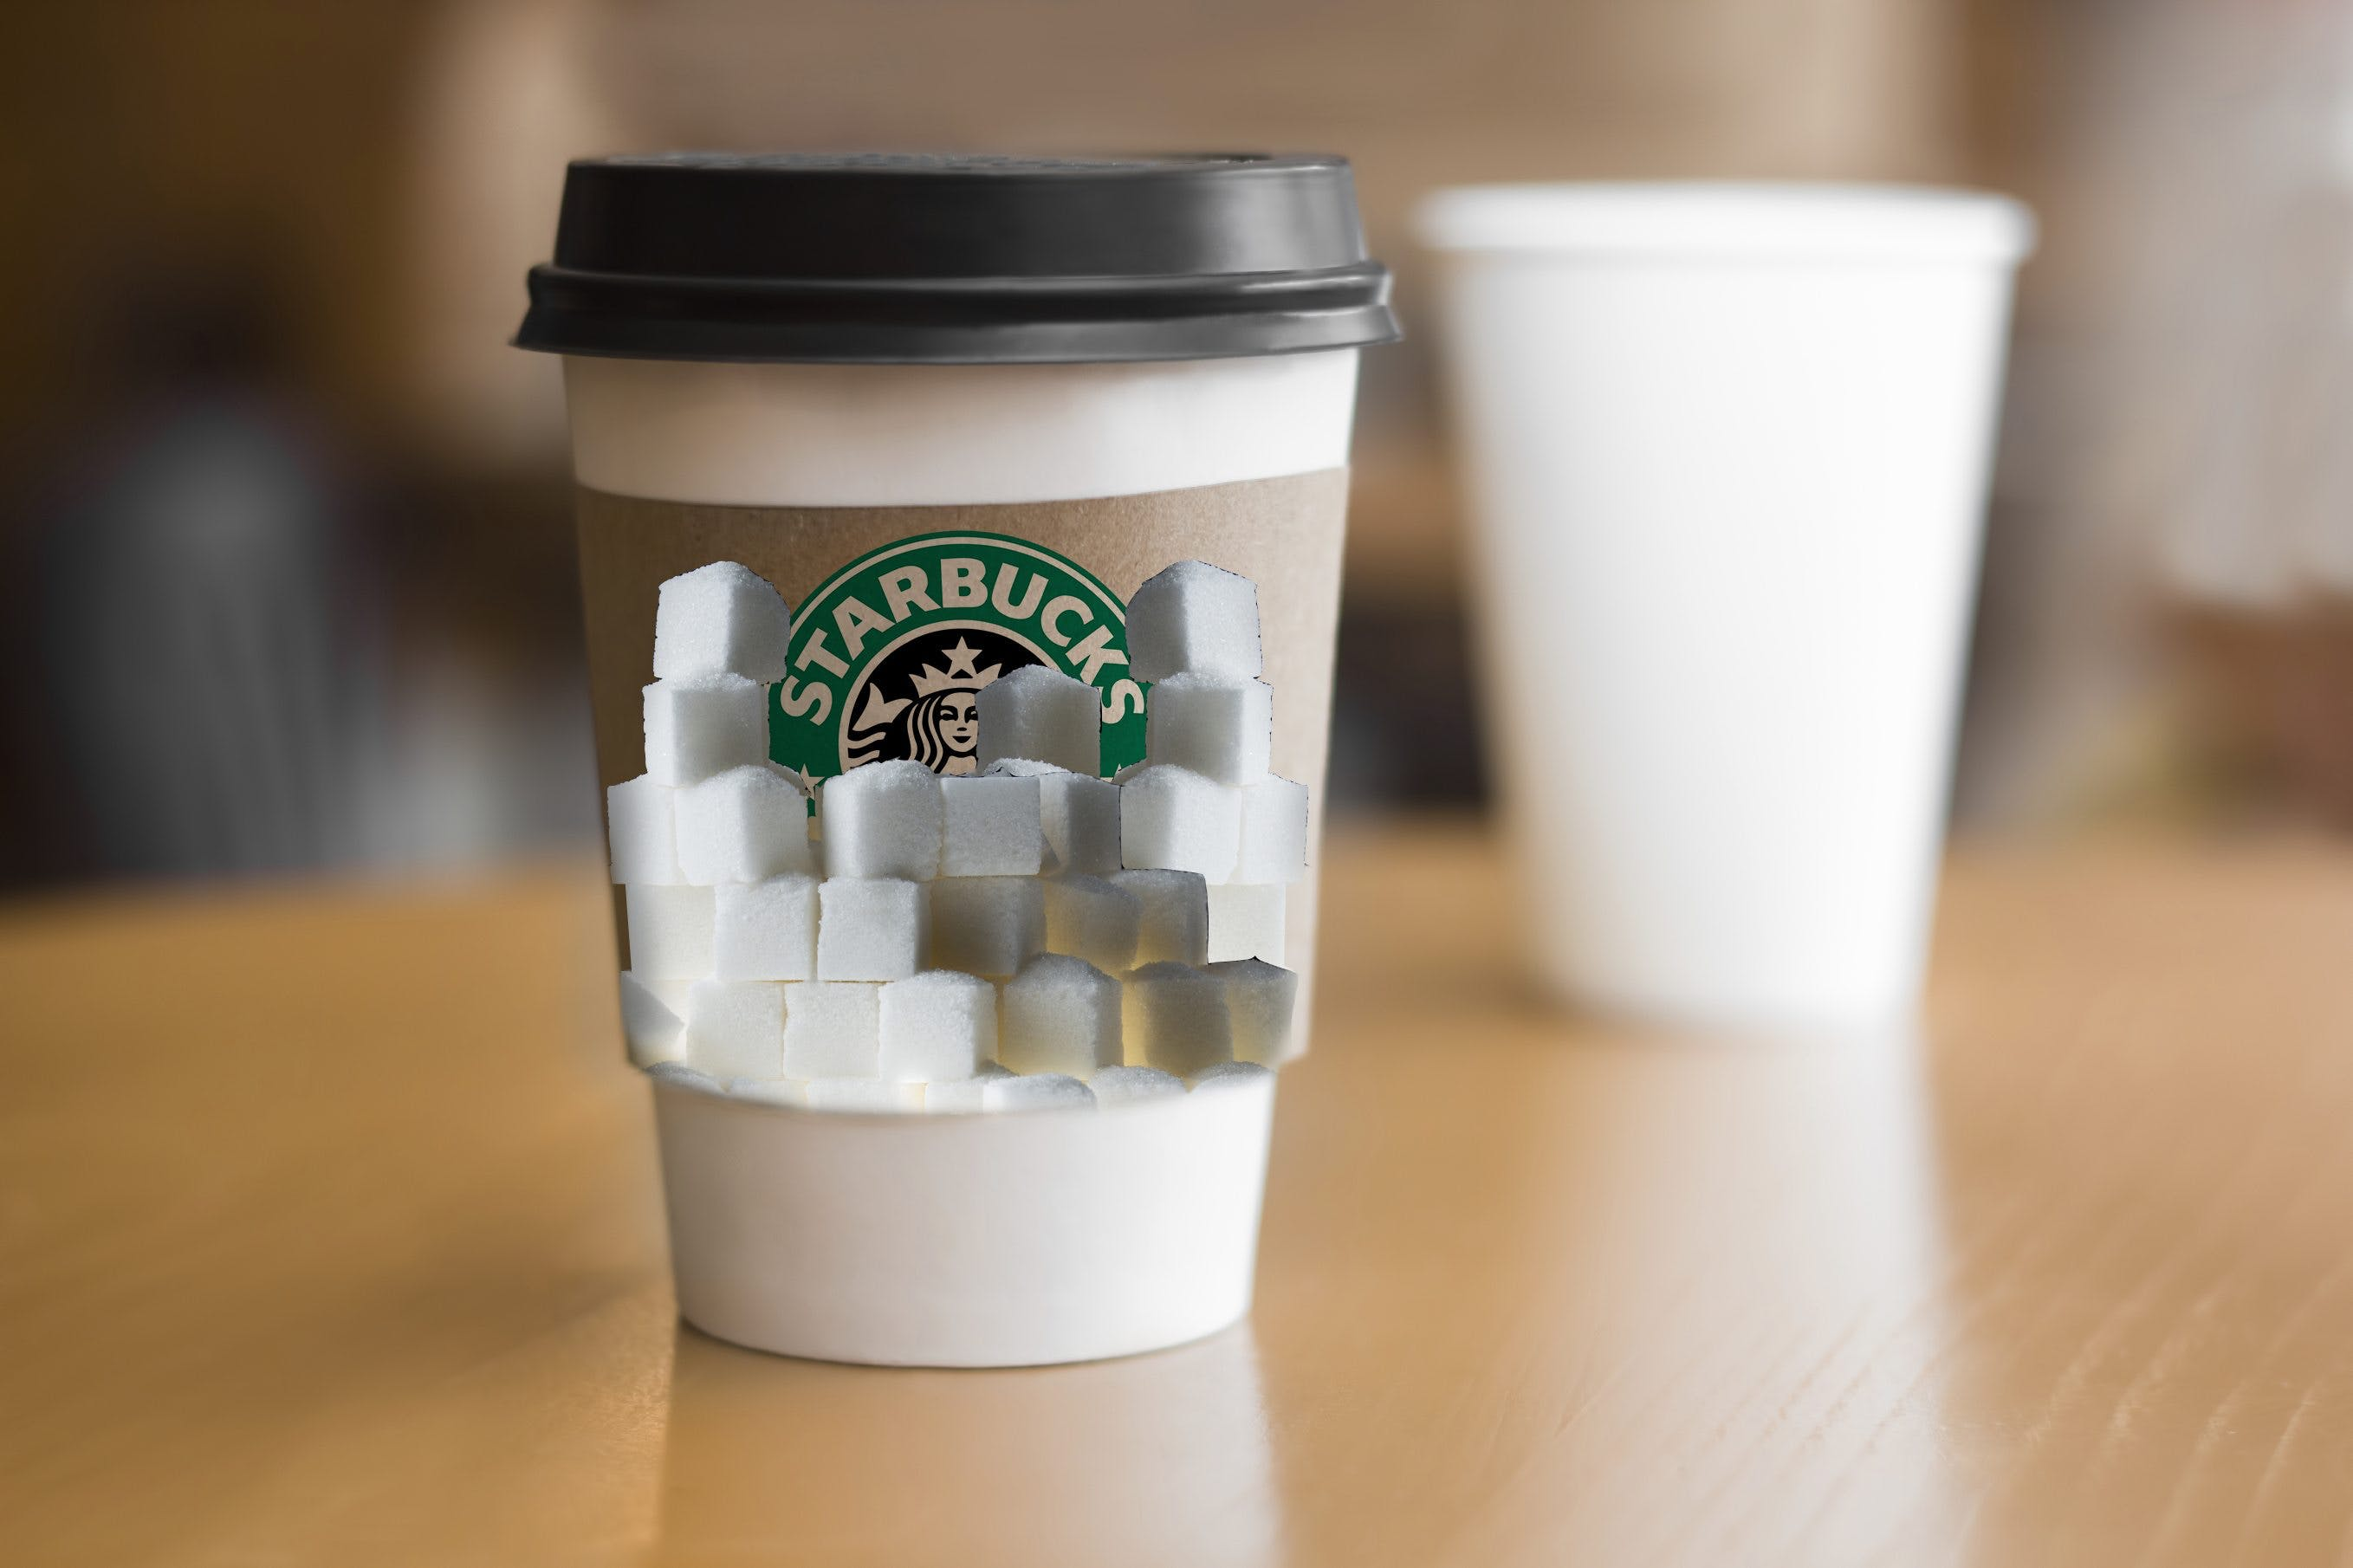 """Shocking"" Sugar Levels at Starbucks, Warns Charity"